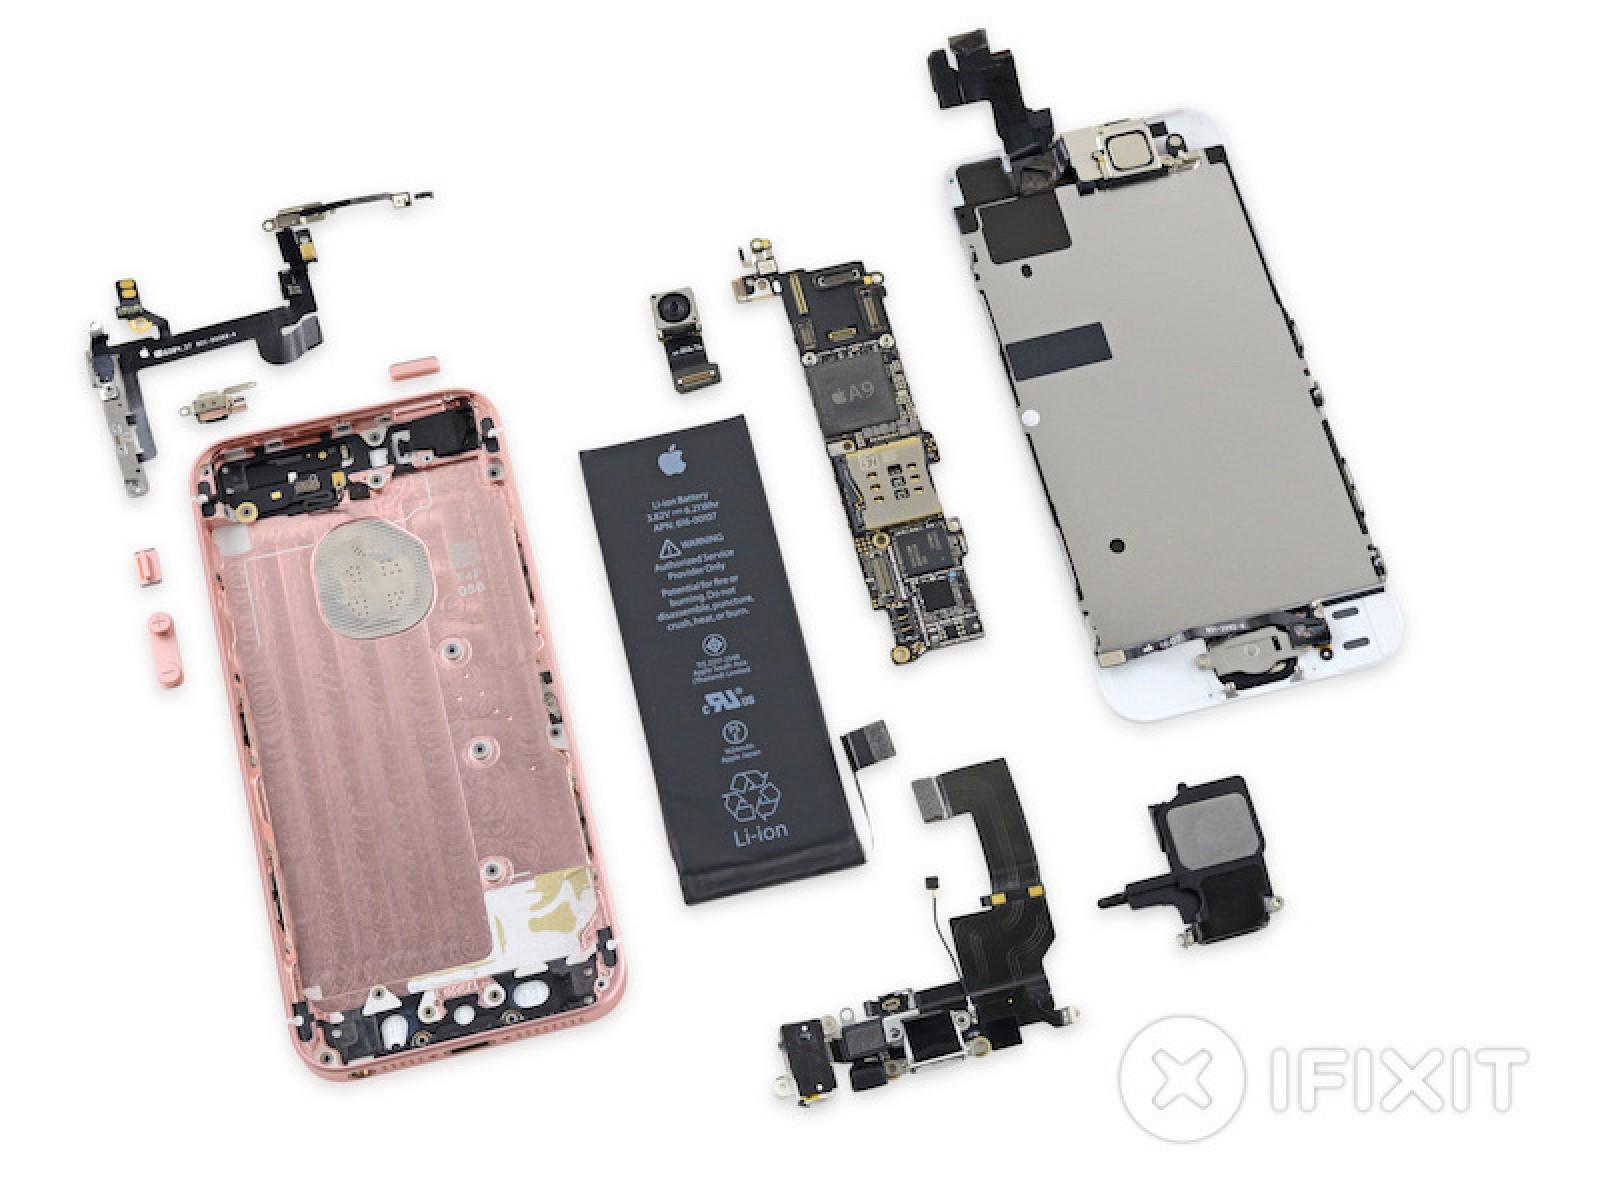 Teardown Finds Iphone Se And Iphone 5s Displays